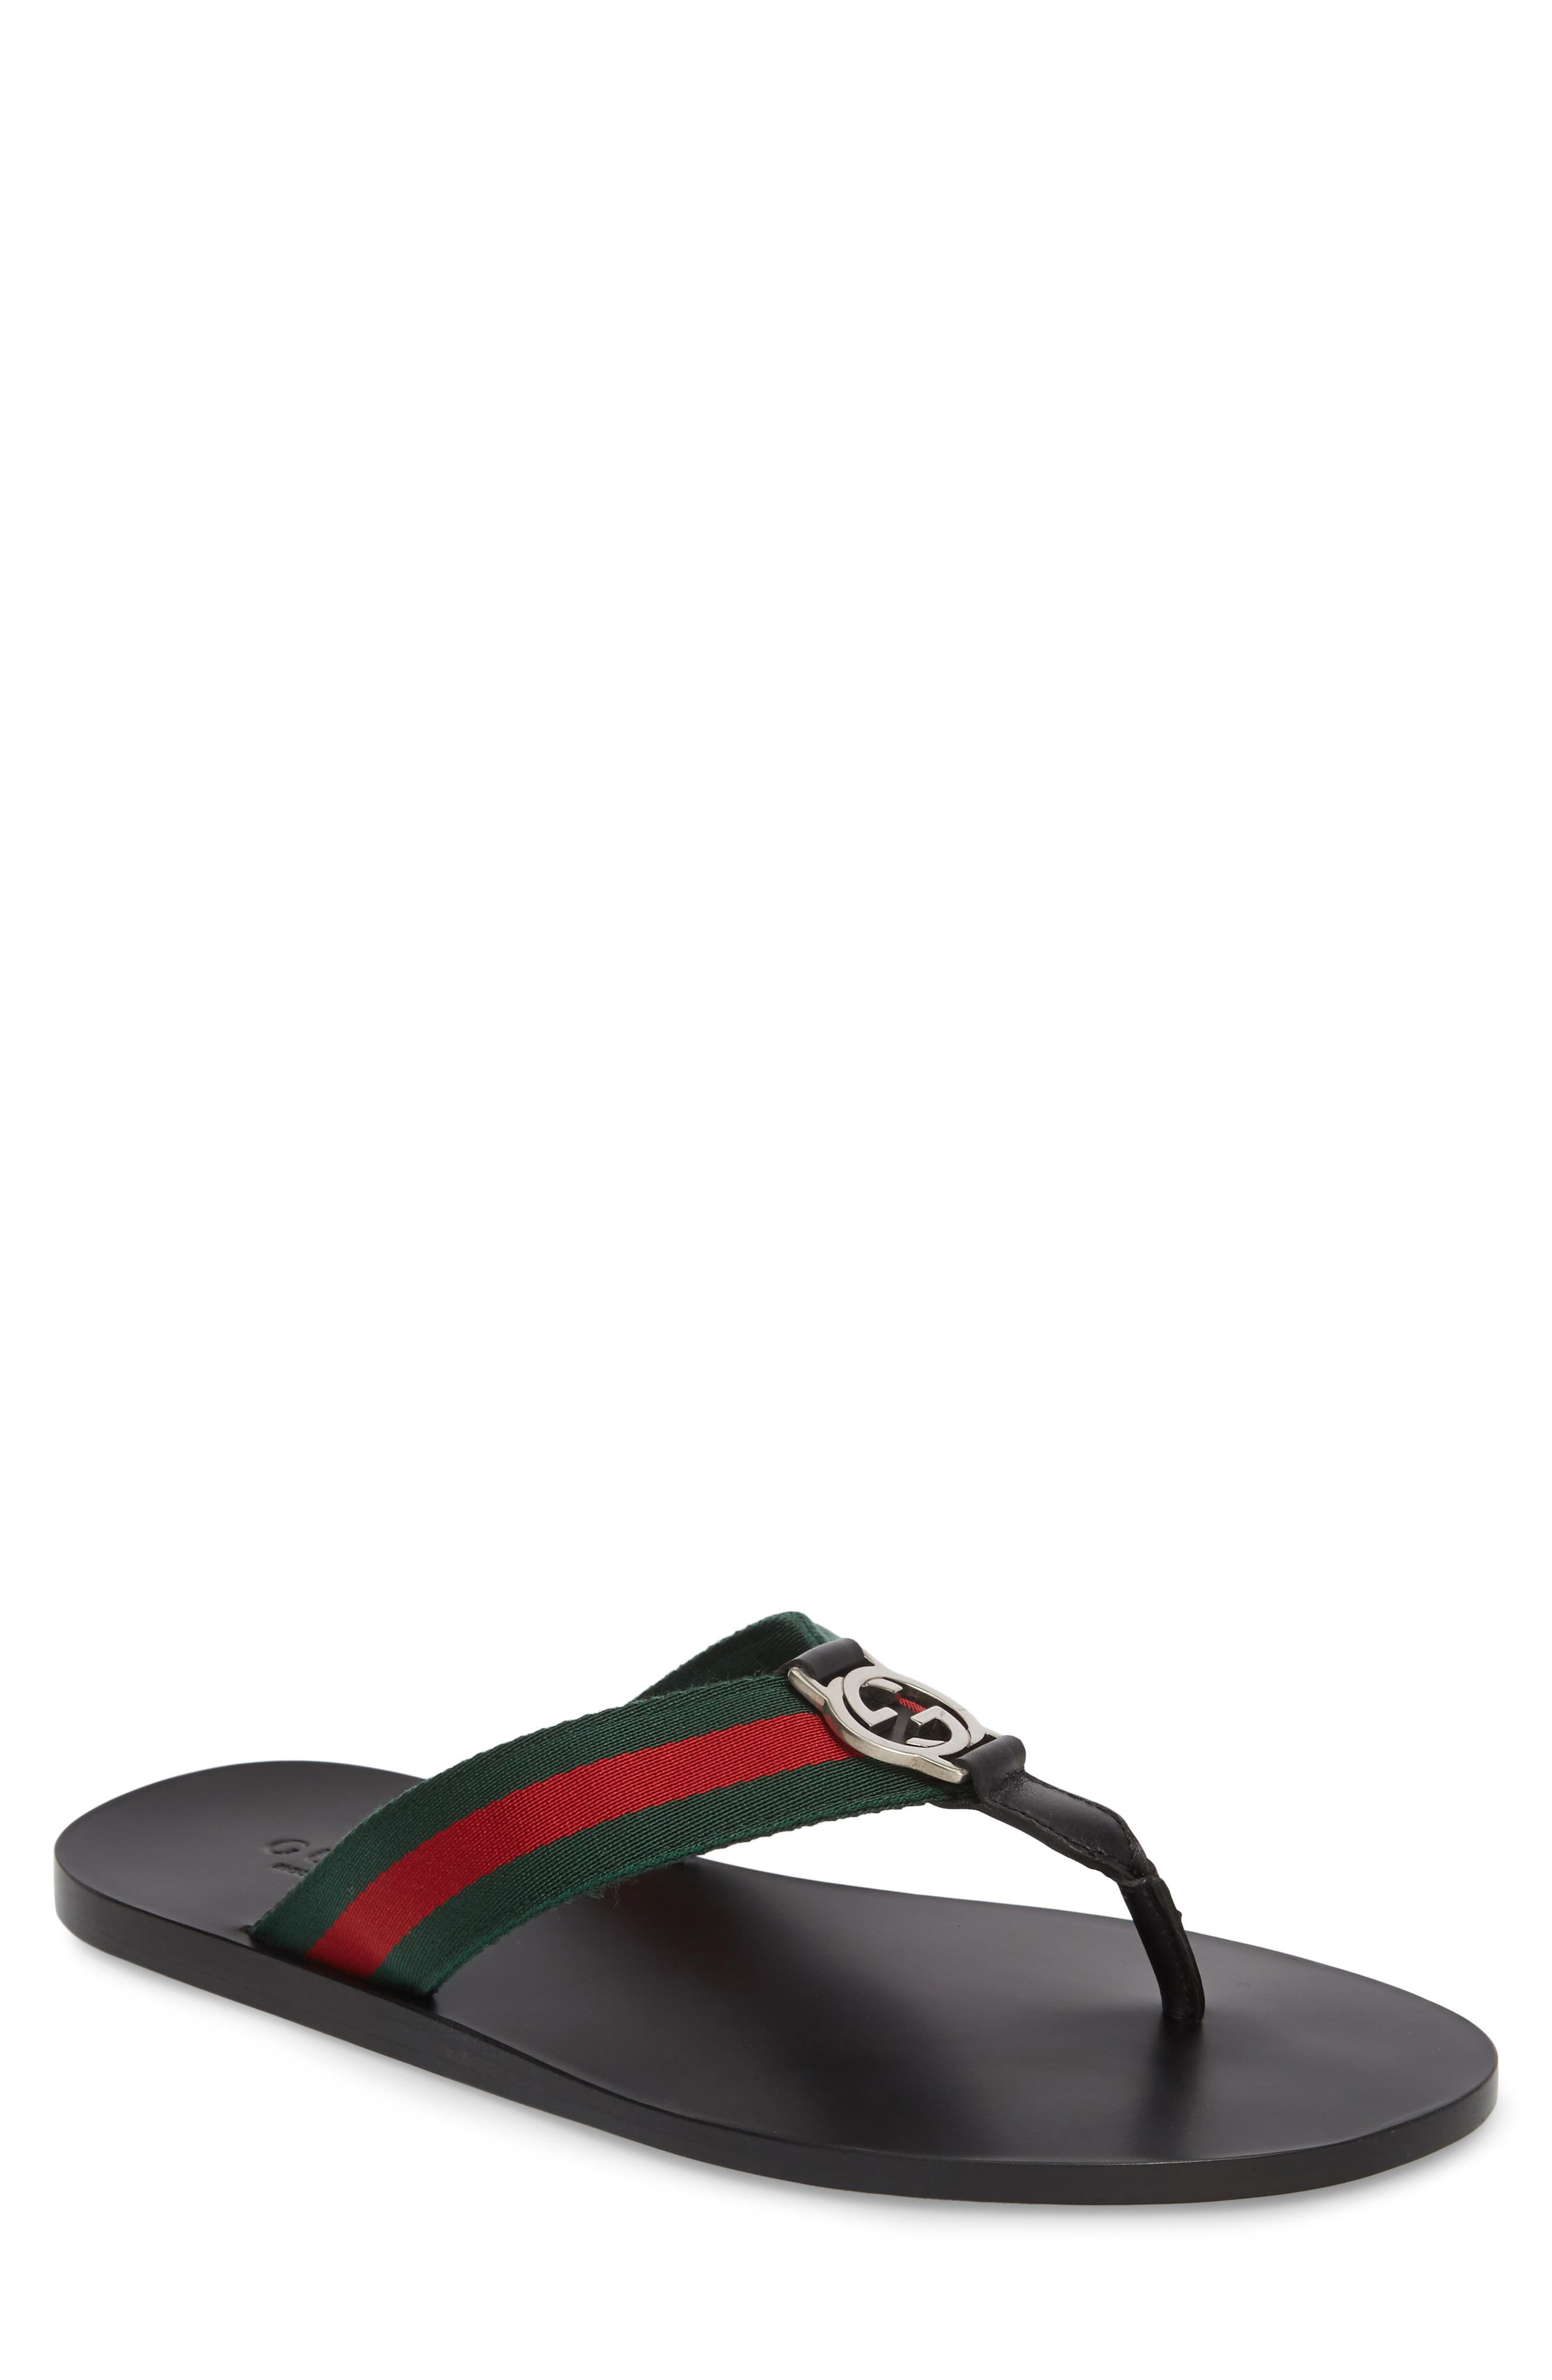 Flip Flop by Gucci